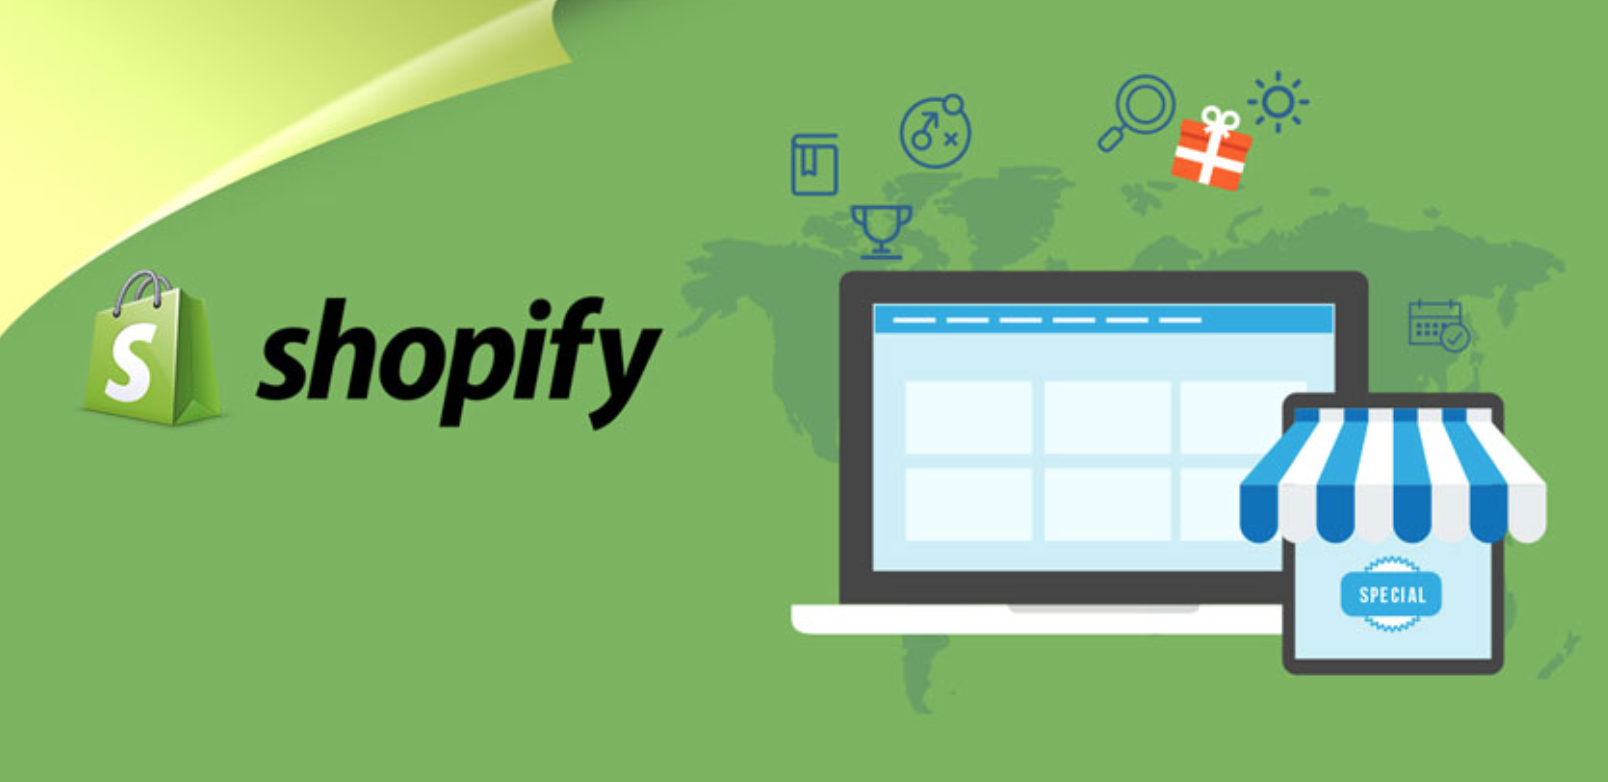 Shopify UAE - How It Works and How to Set It Up